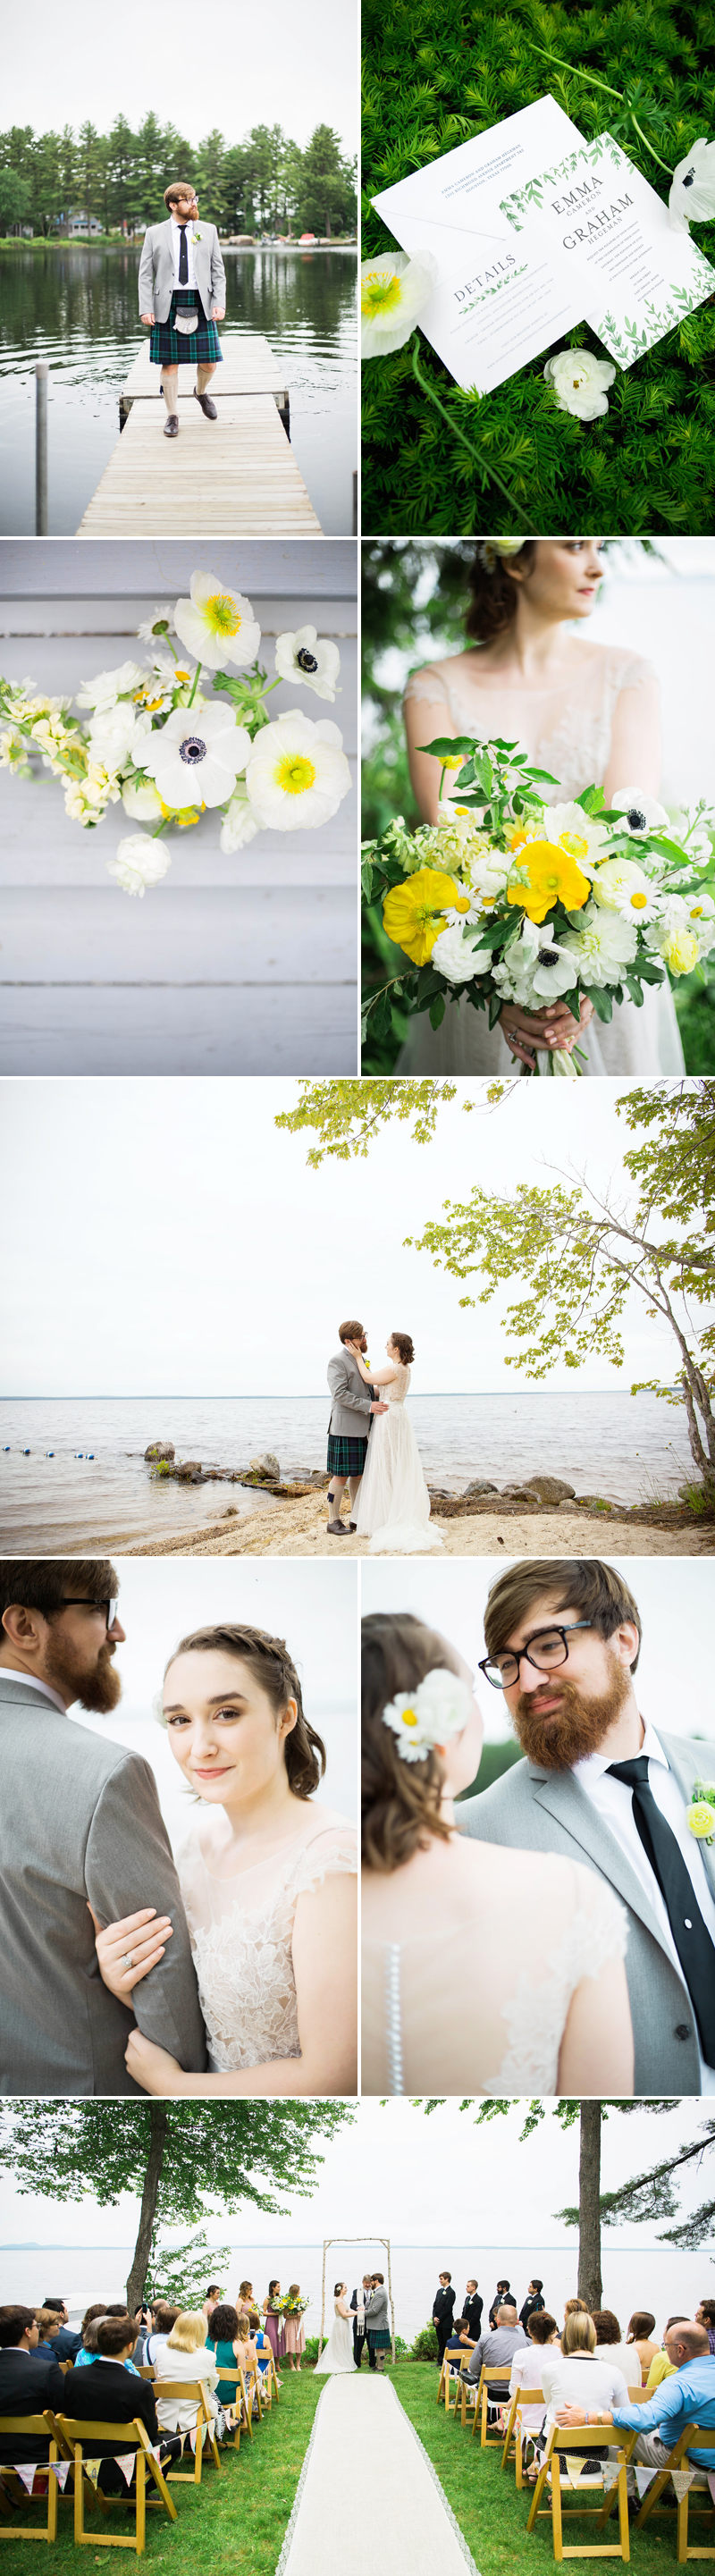 02-sebago-maine-wedding.jpg